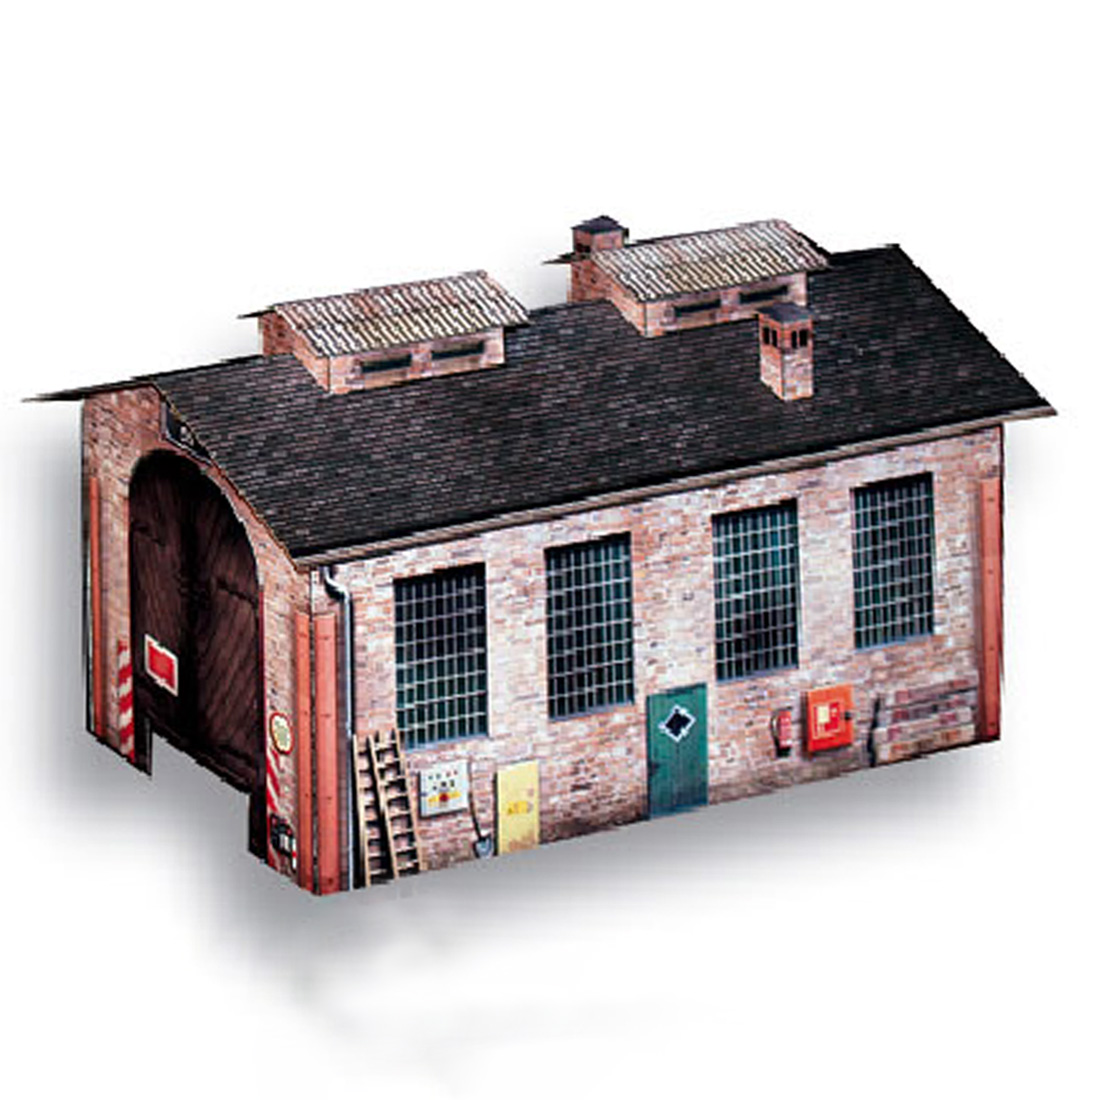 1:87 HO Scale Handmade Warehouse House Paper Model Sand Table Warehouse Model  Ho Scale Model Accessories